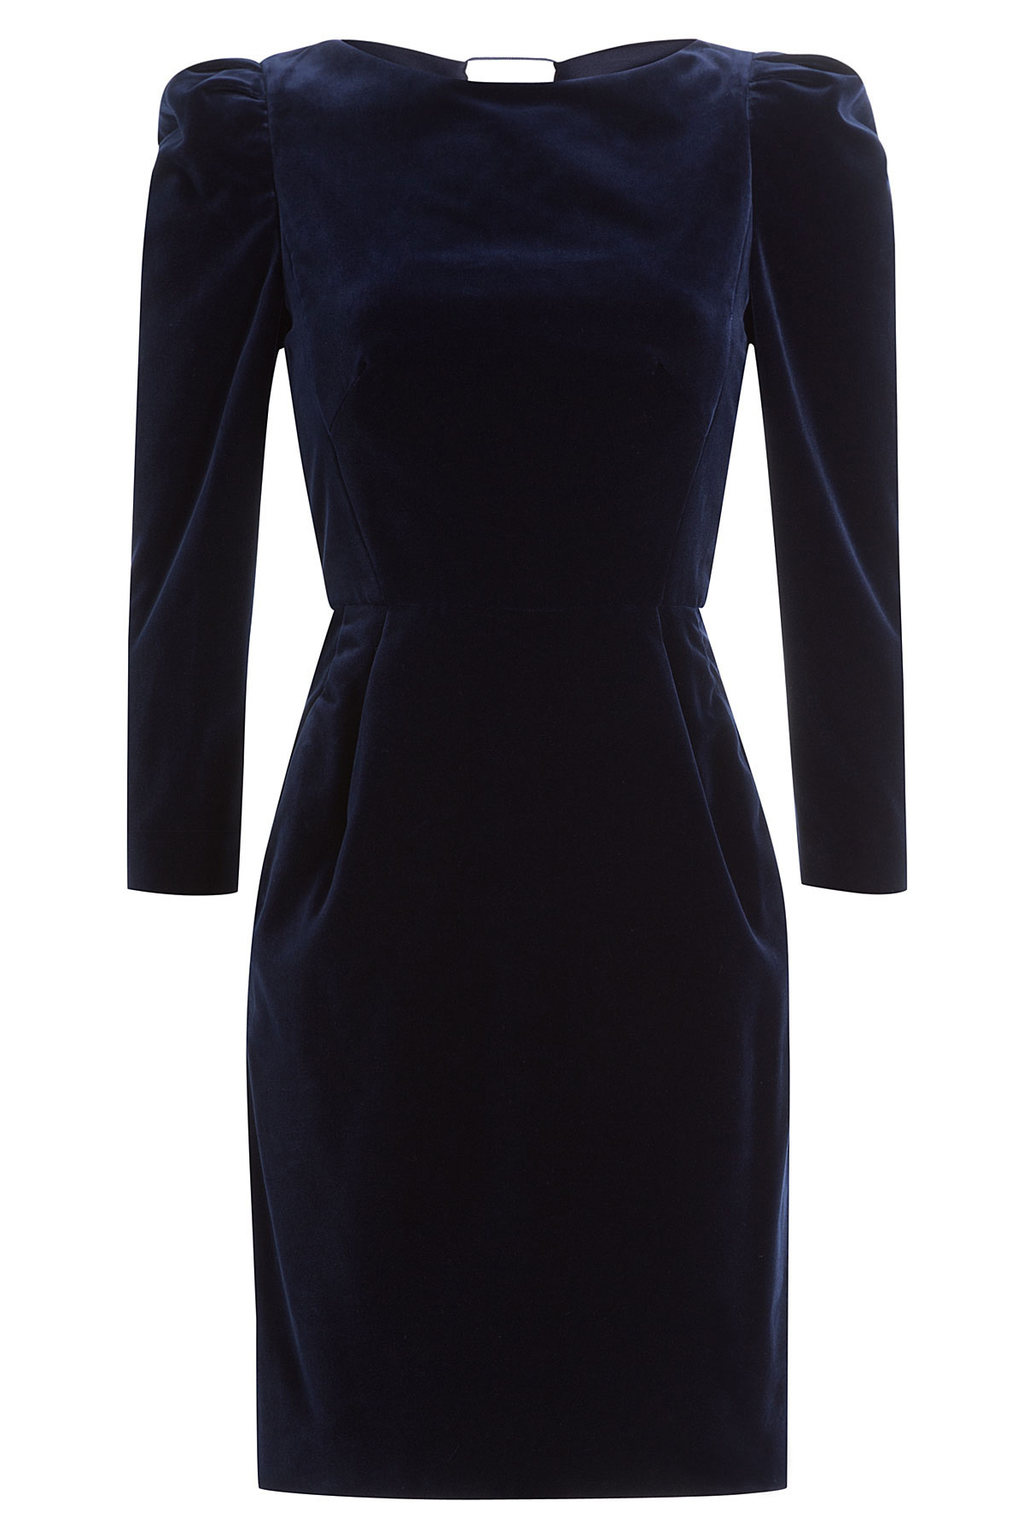 Velvet Dress Blue - style: shift; length: mini; pattern: plain; predominant colour: navy; occasions: evening; fit: body skimming; fibres: cotton - 100%; neckline: crew; sleeve length: long sleeve; sleeve style: standard; pattern type: fabric; texture group: velvet/fabrics with pile; season: a/w 2016; wardrobe: event